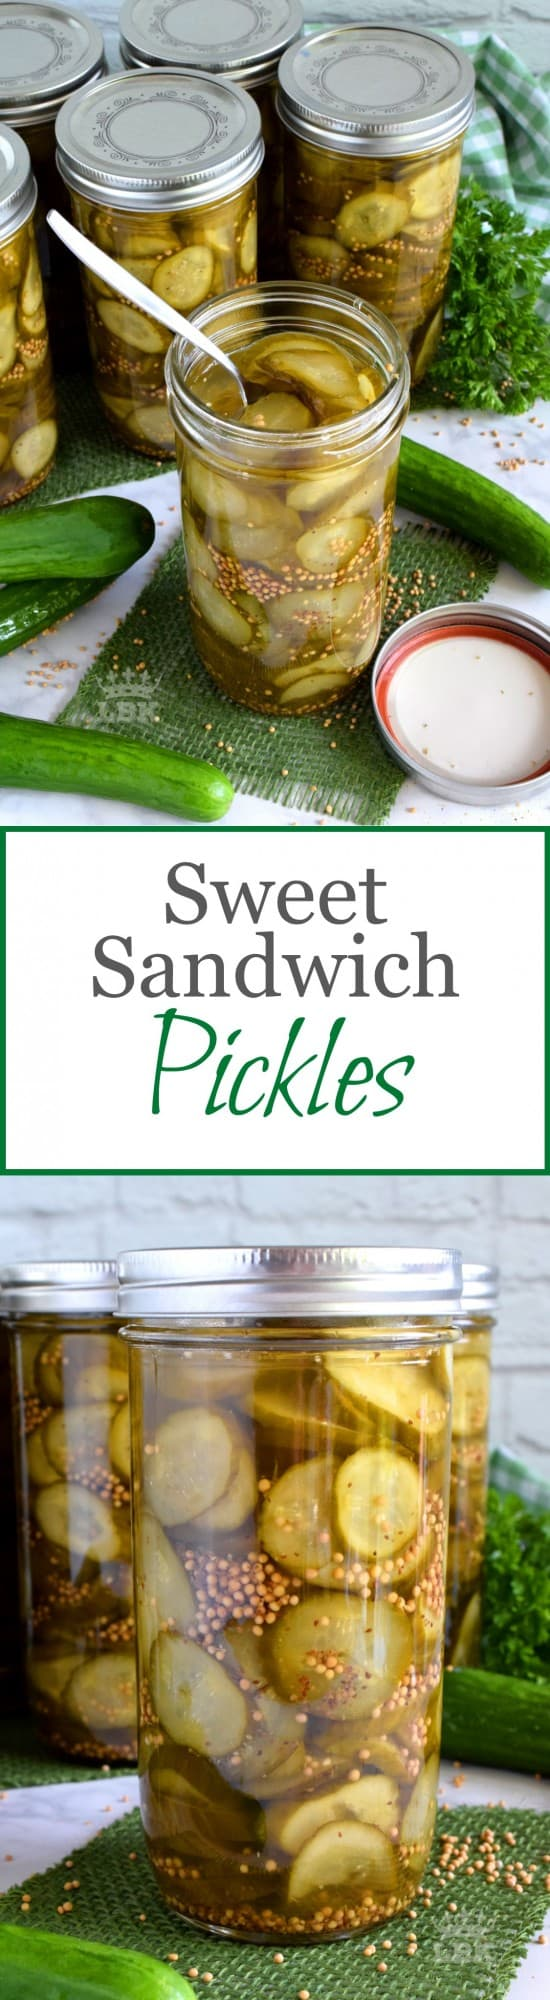 Sweet Sandwich Pickles